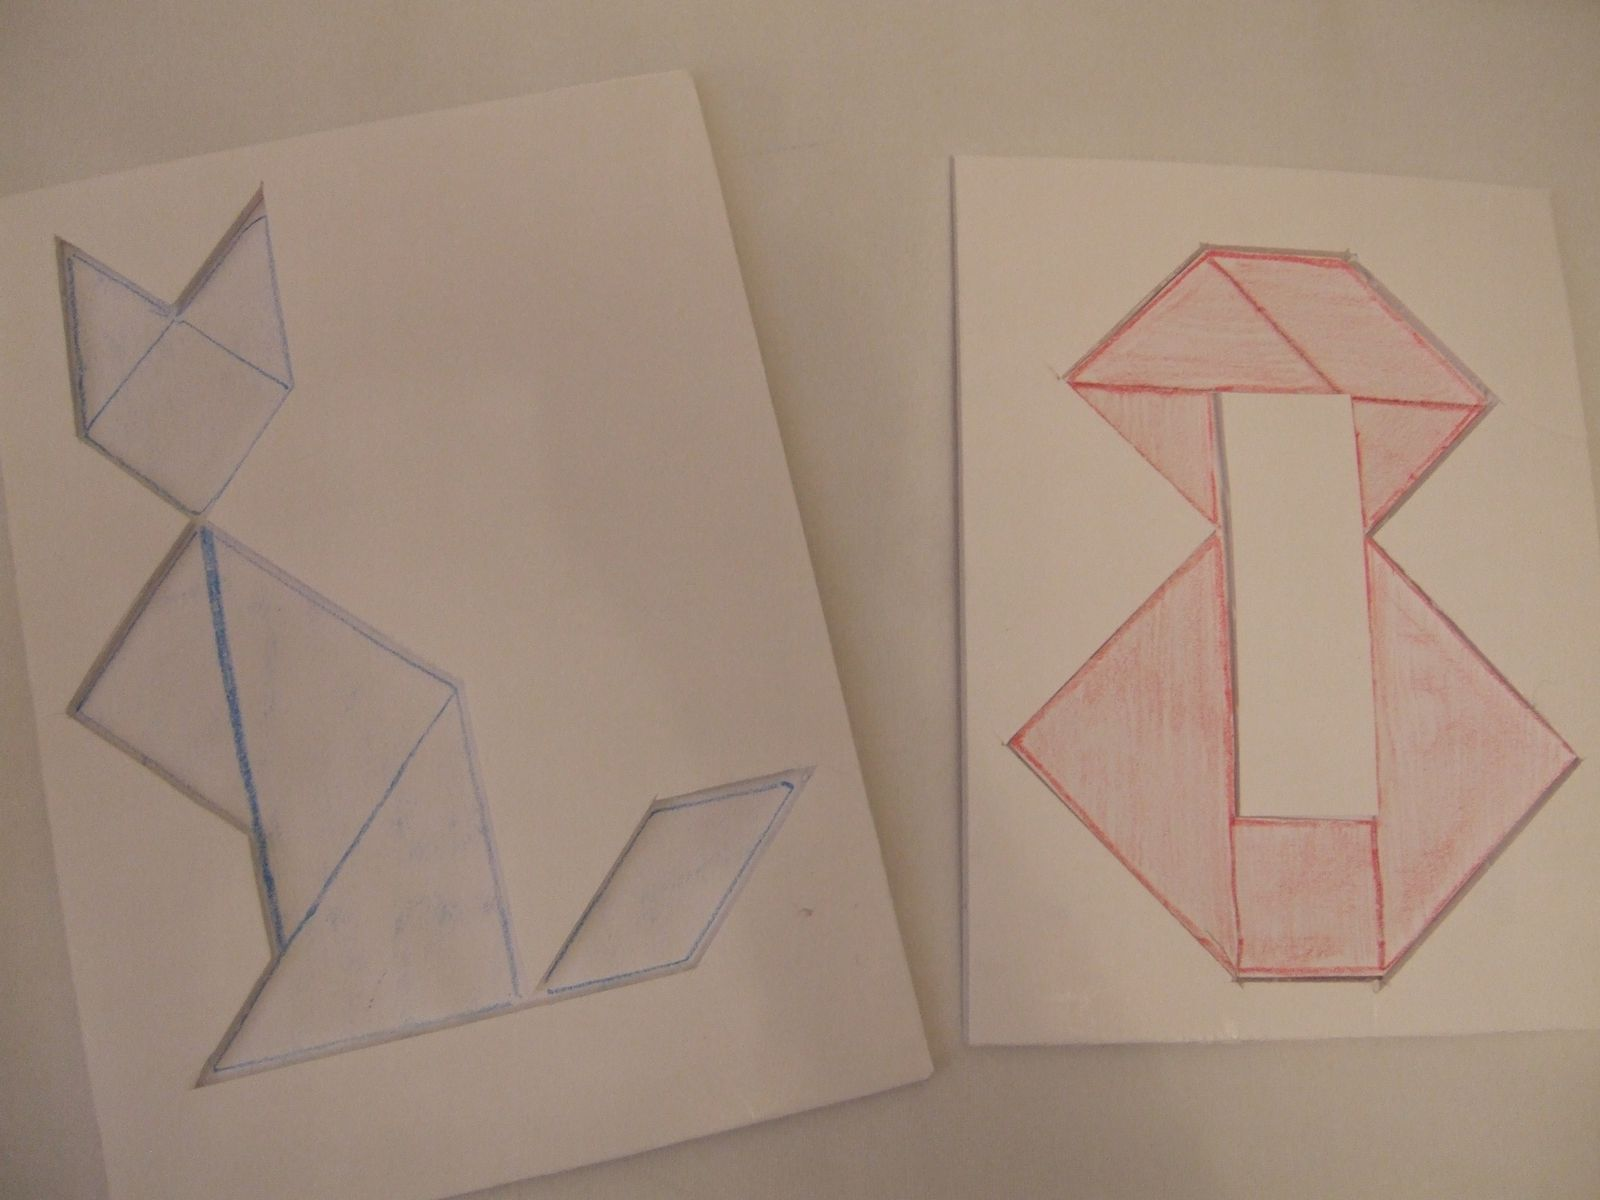 tangrams type puzzle-cadre